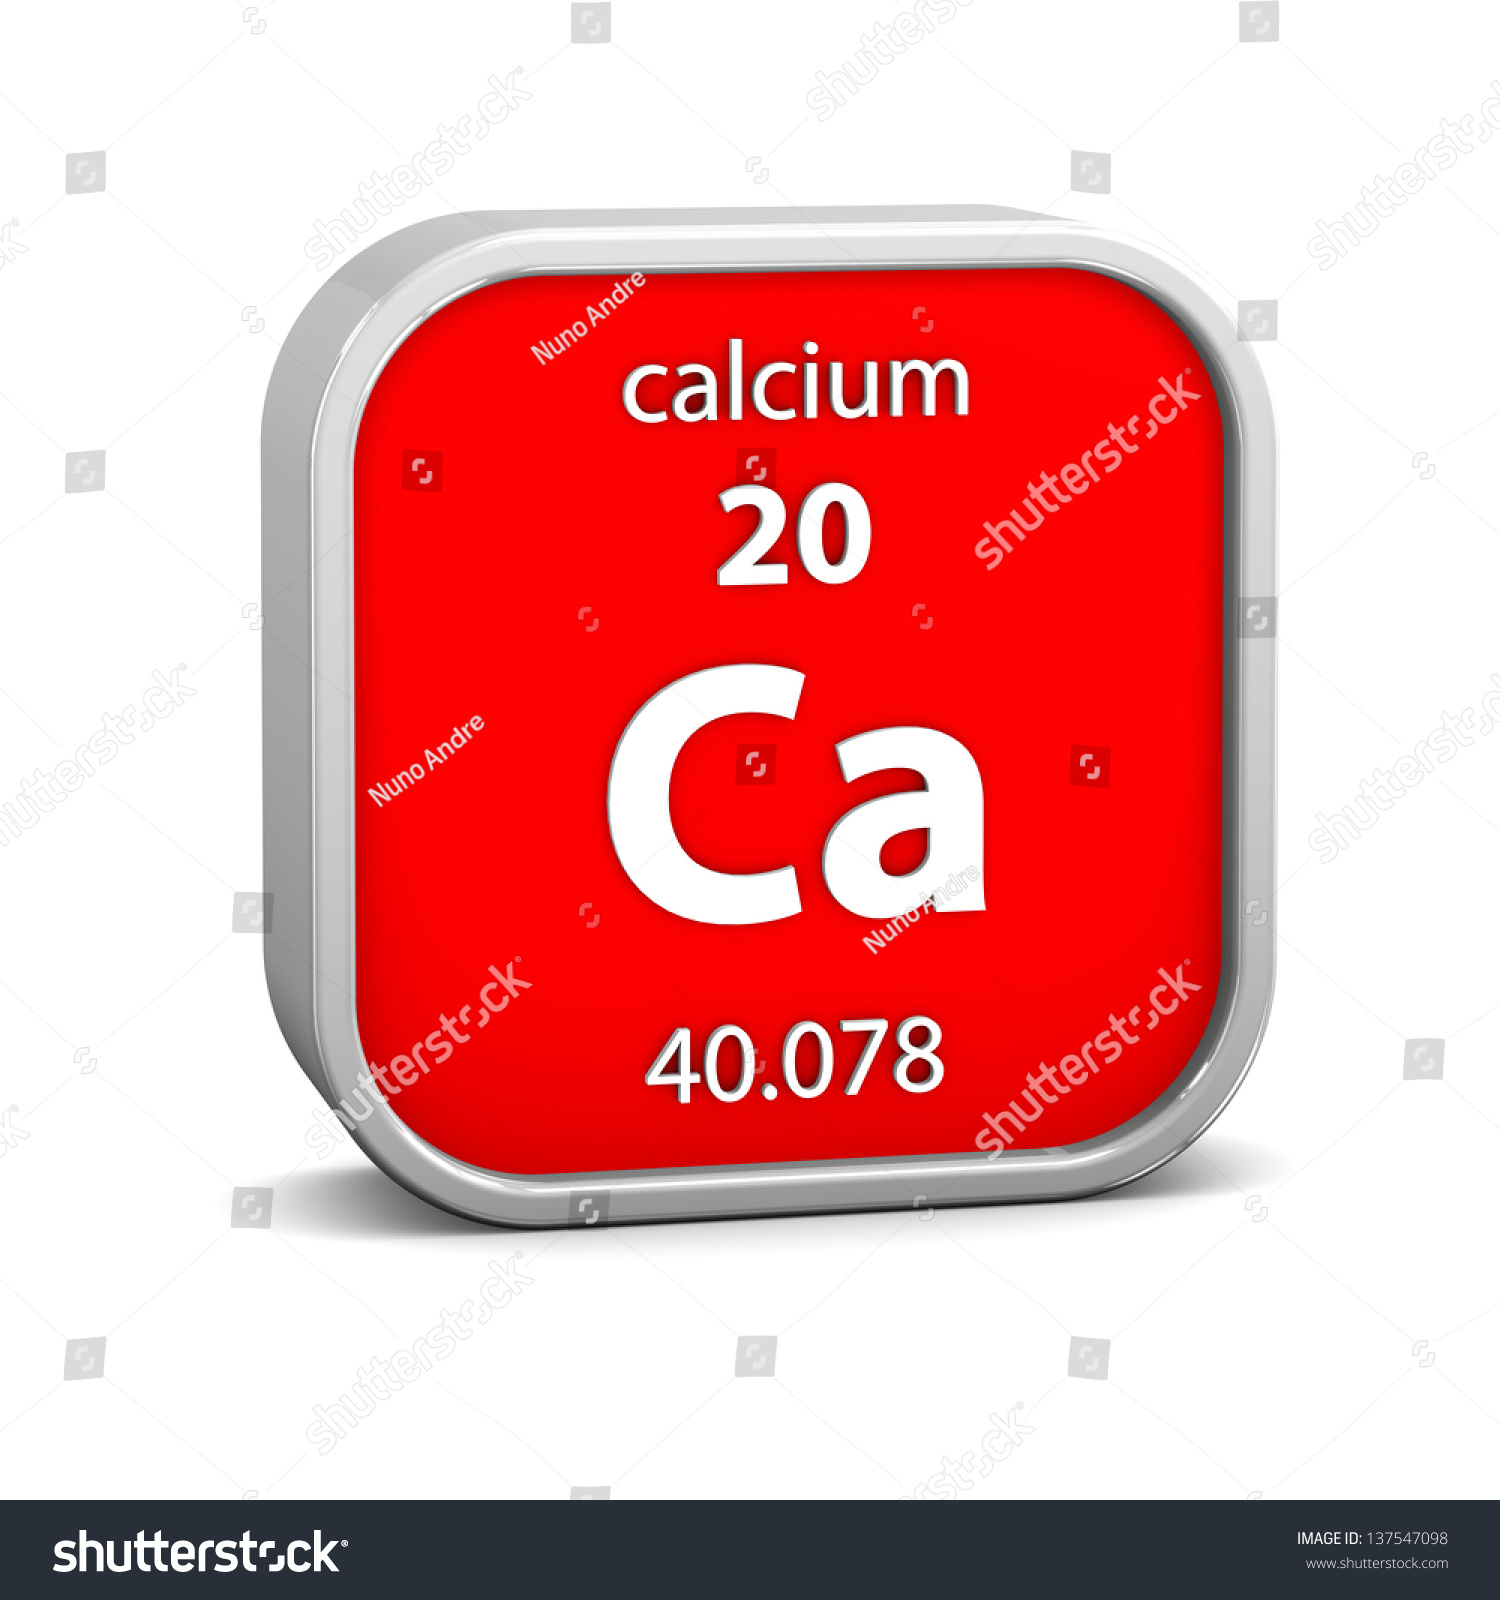 What group is calcium in on the periodic table images periodic calcium on the periodic table gallery periodic table images calcium on periodic table images periodic table gamestrikefo Choice Image